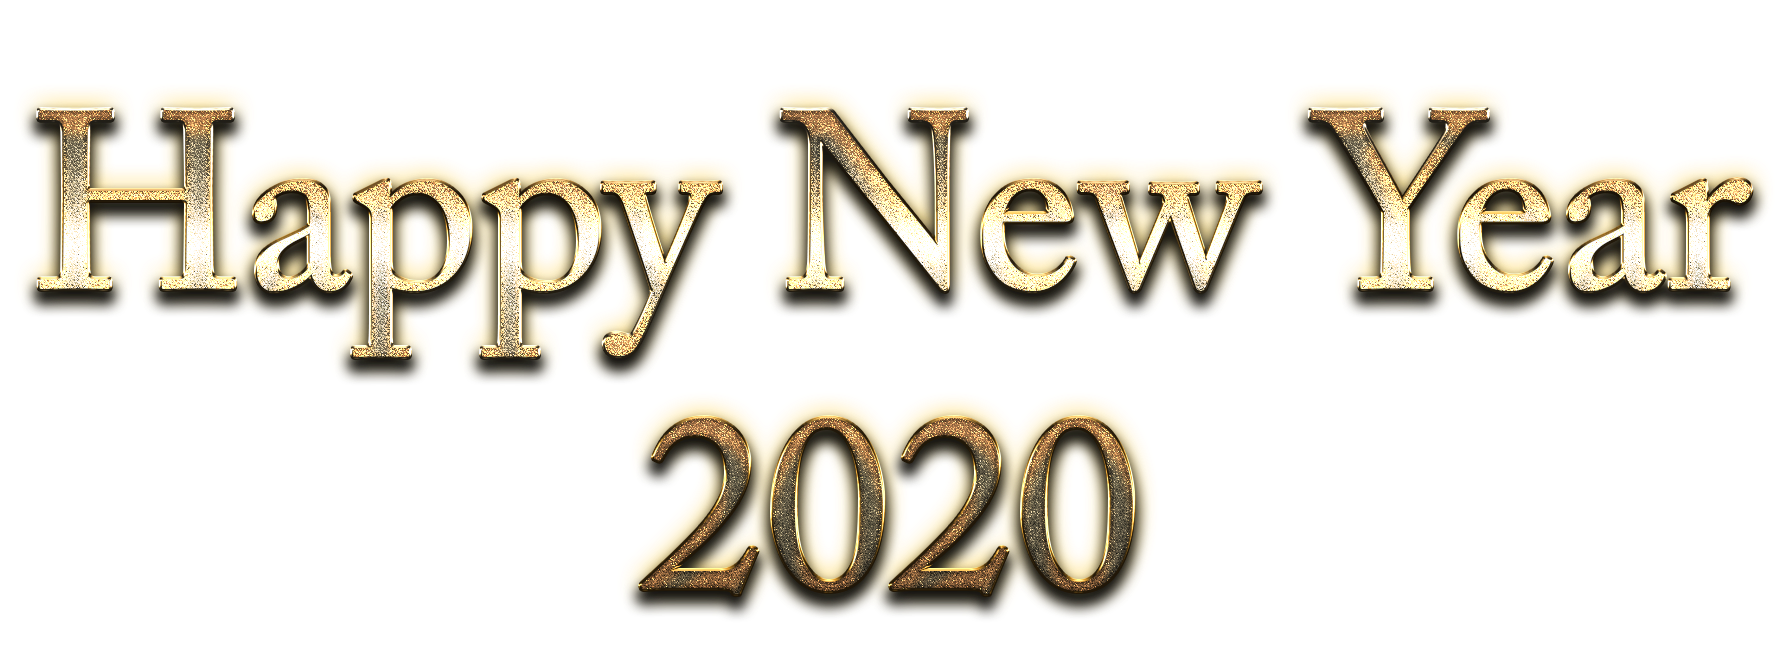 Happy New Year 2020 Classic Gold Transparent Png Stickpng